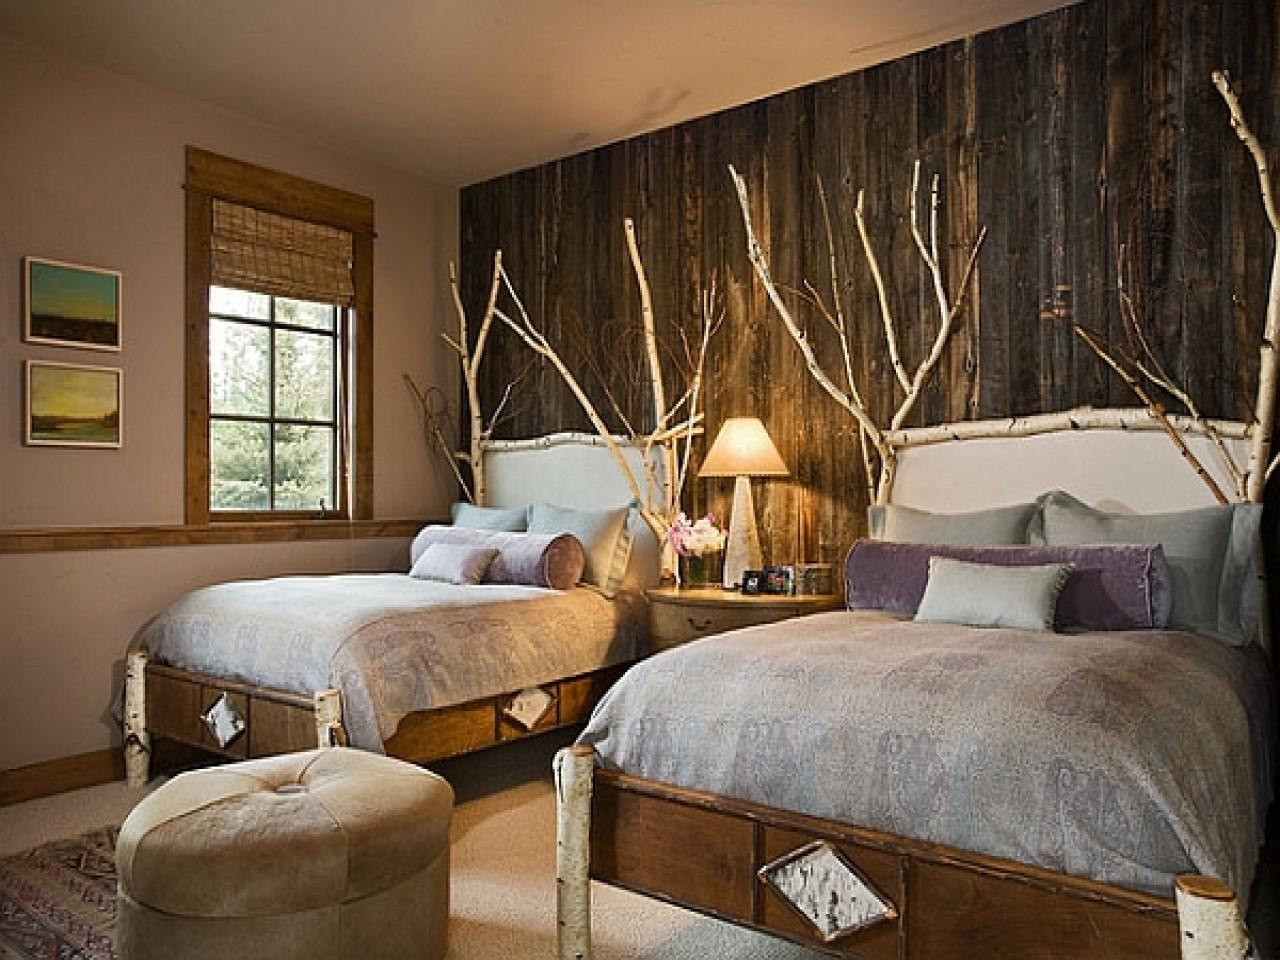 Decorating Ideas Small Master Bedrooms Rustic Wood Decoratorist 76922